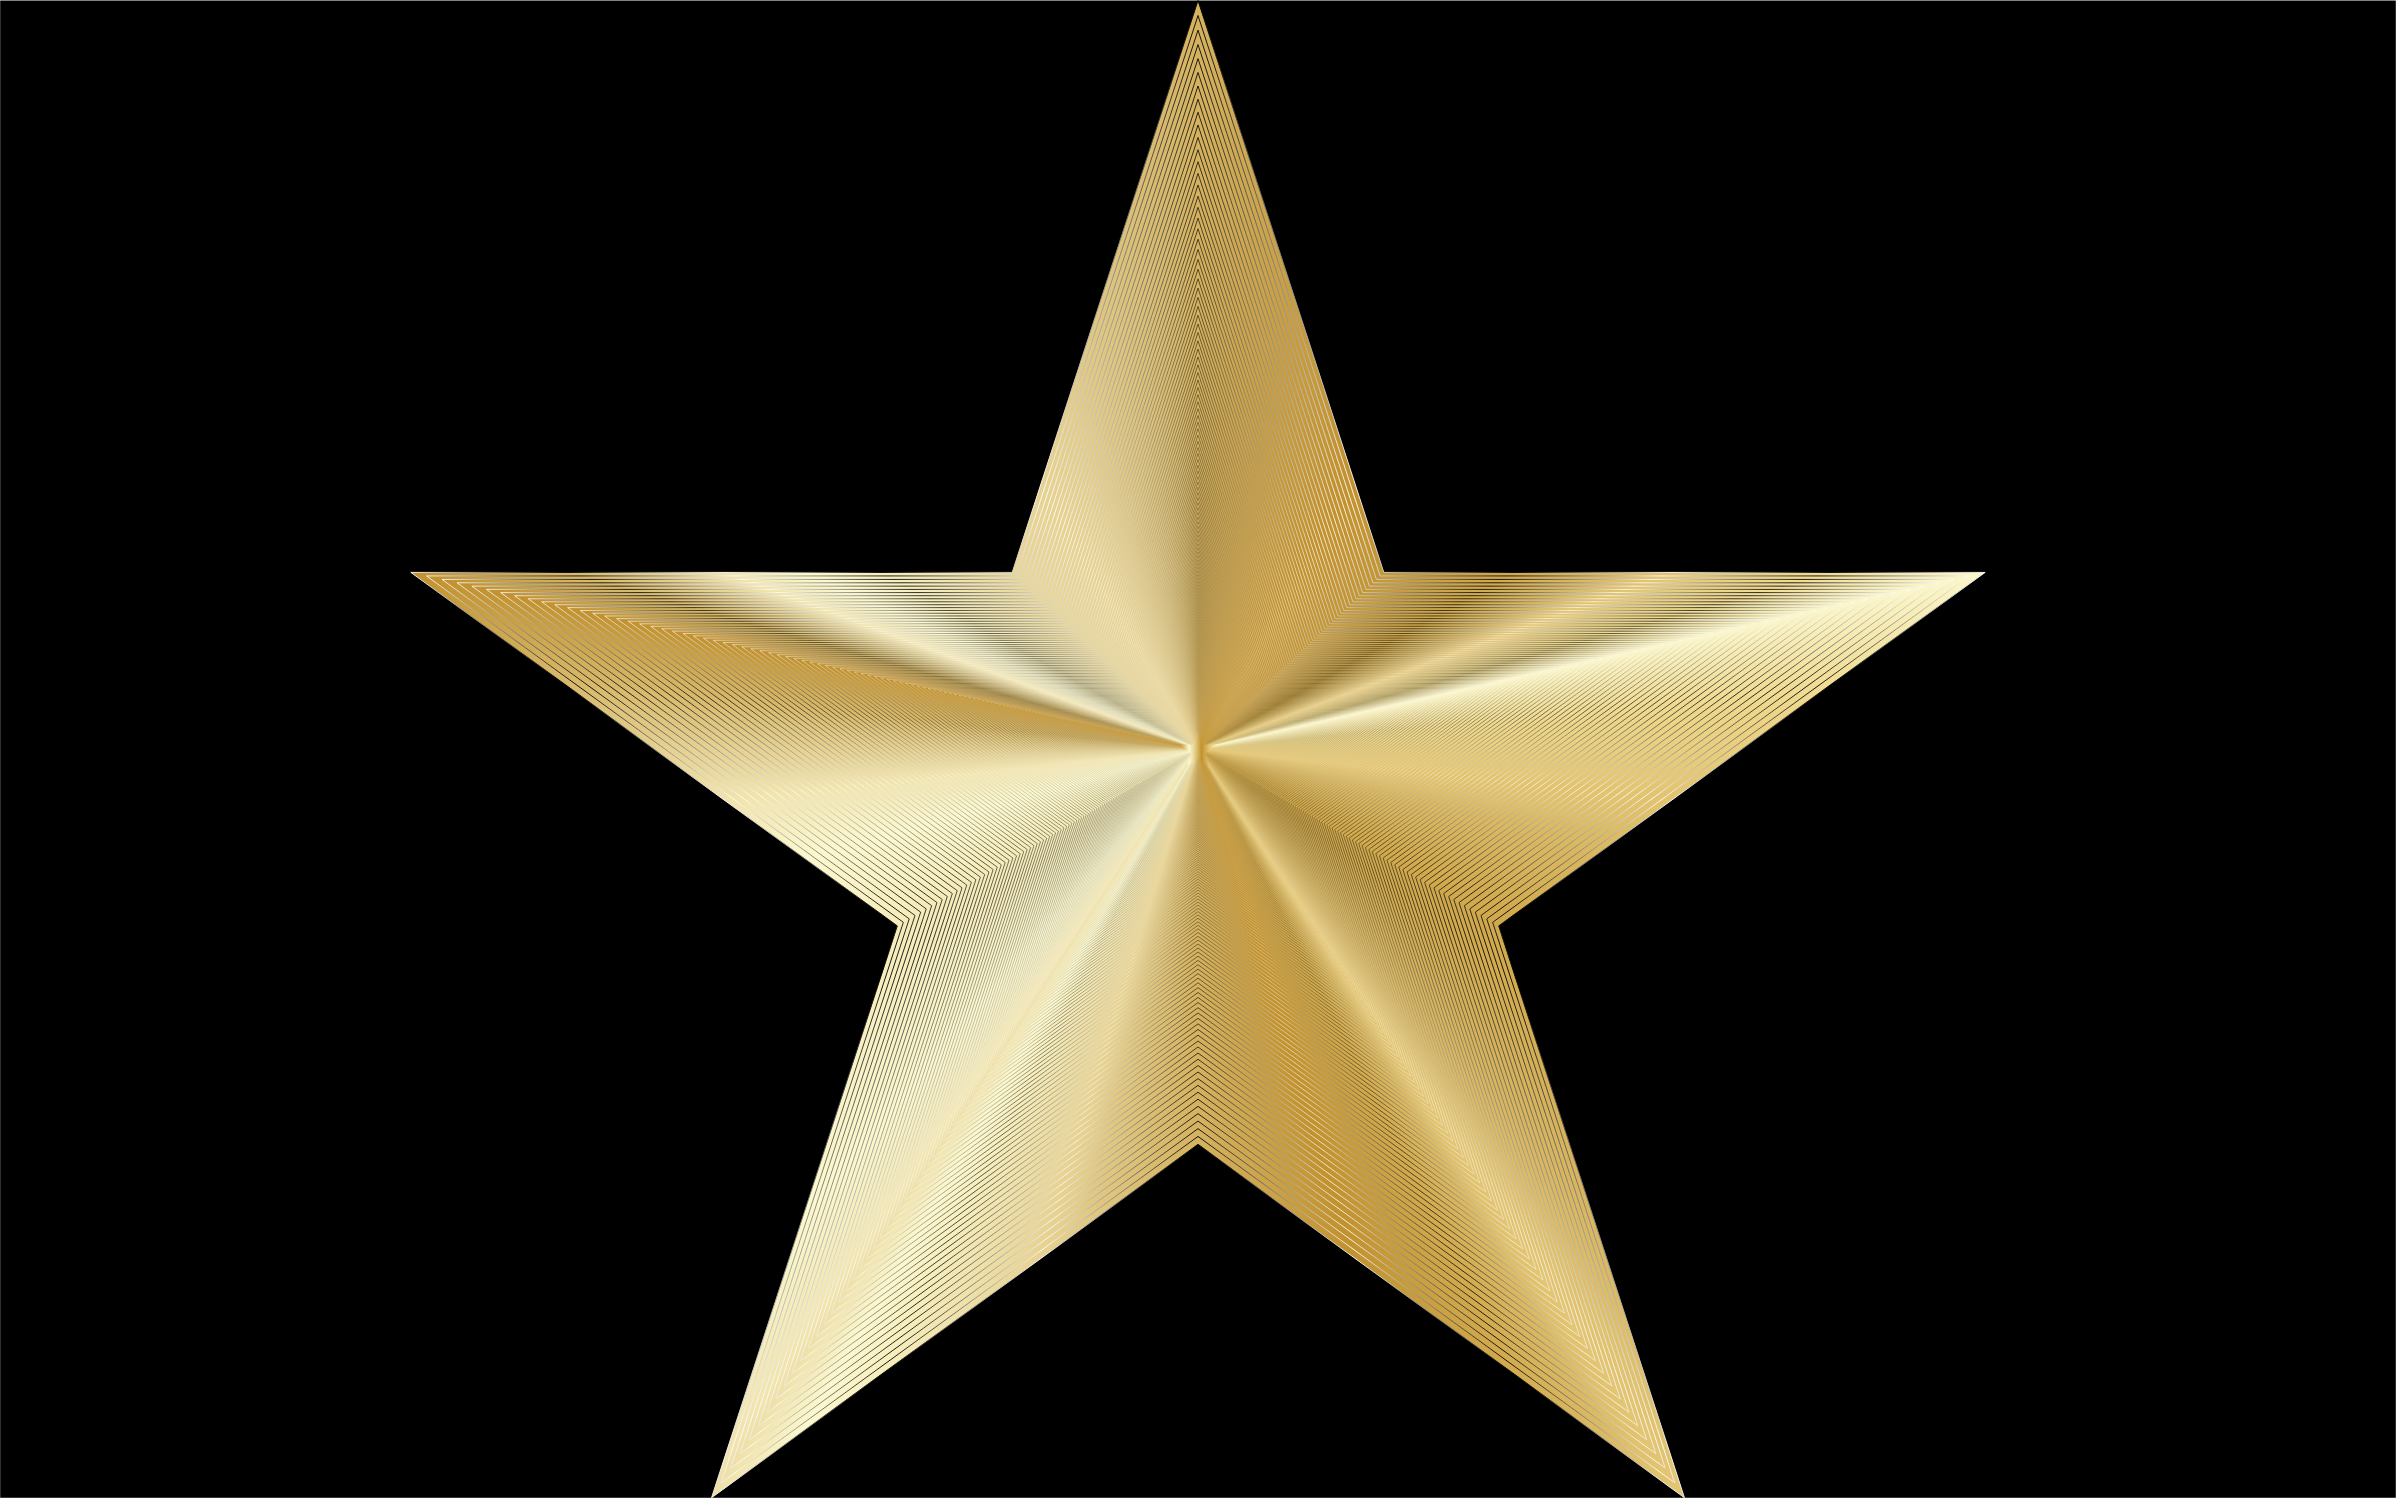 Gold Star by GDJ